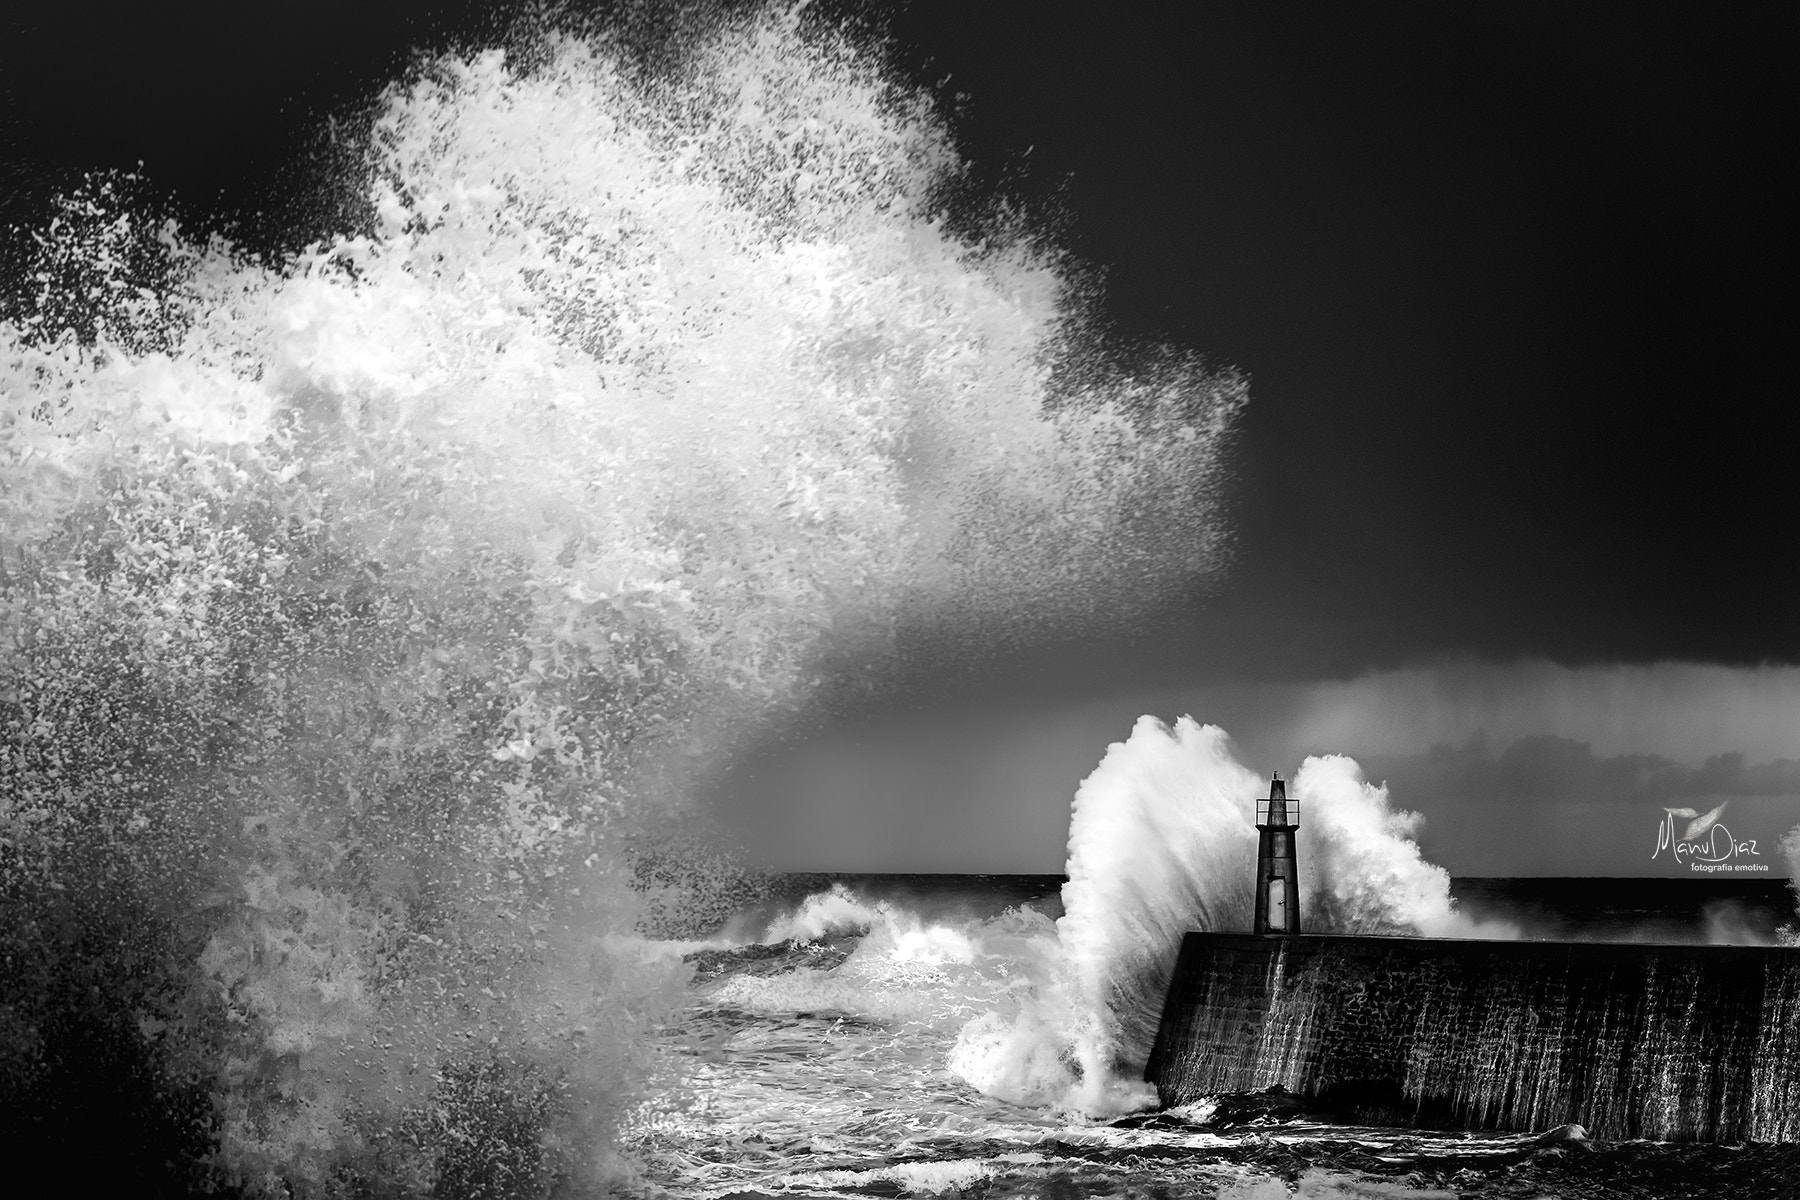 Photograph Storm II (B/N) by Manu Díaz on 500px